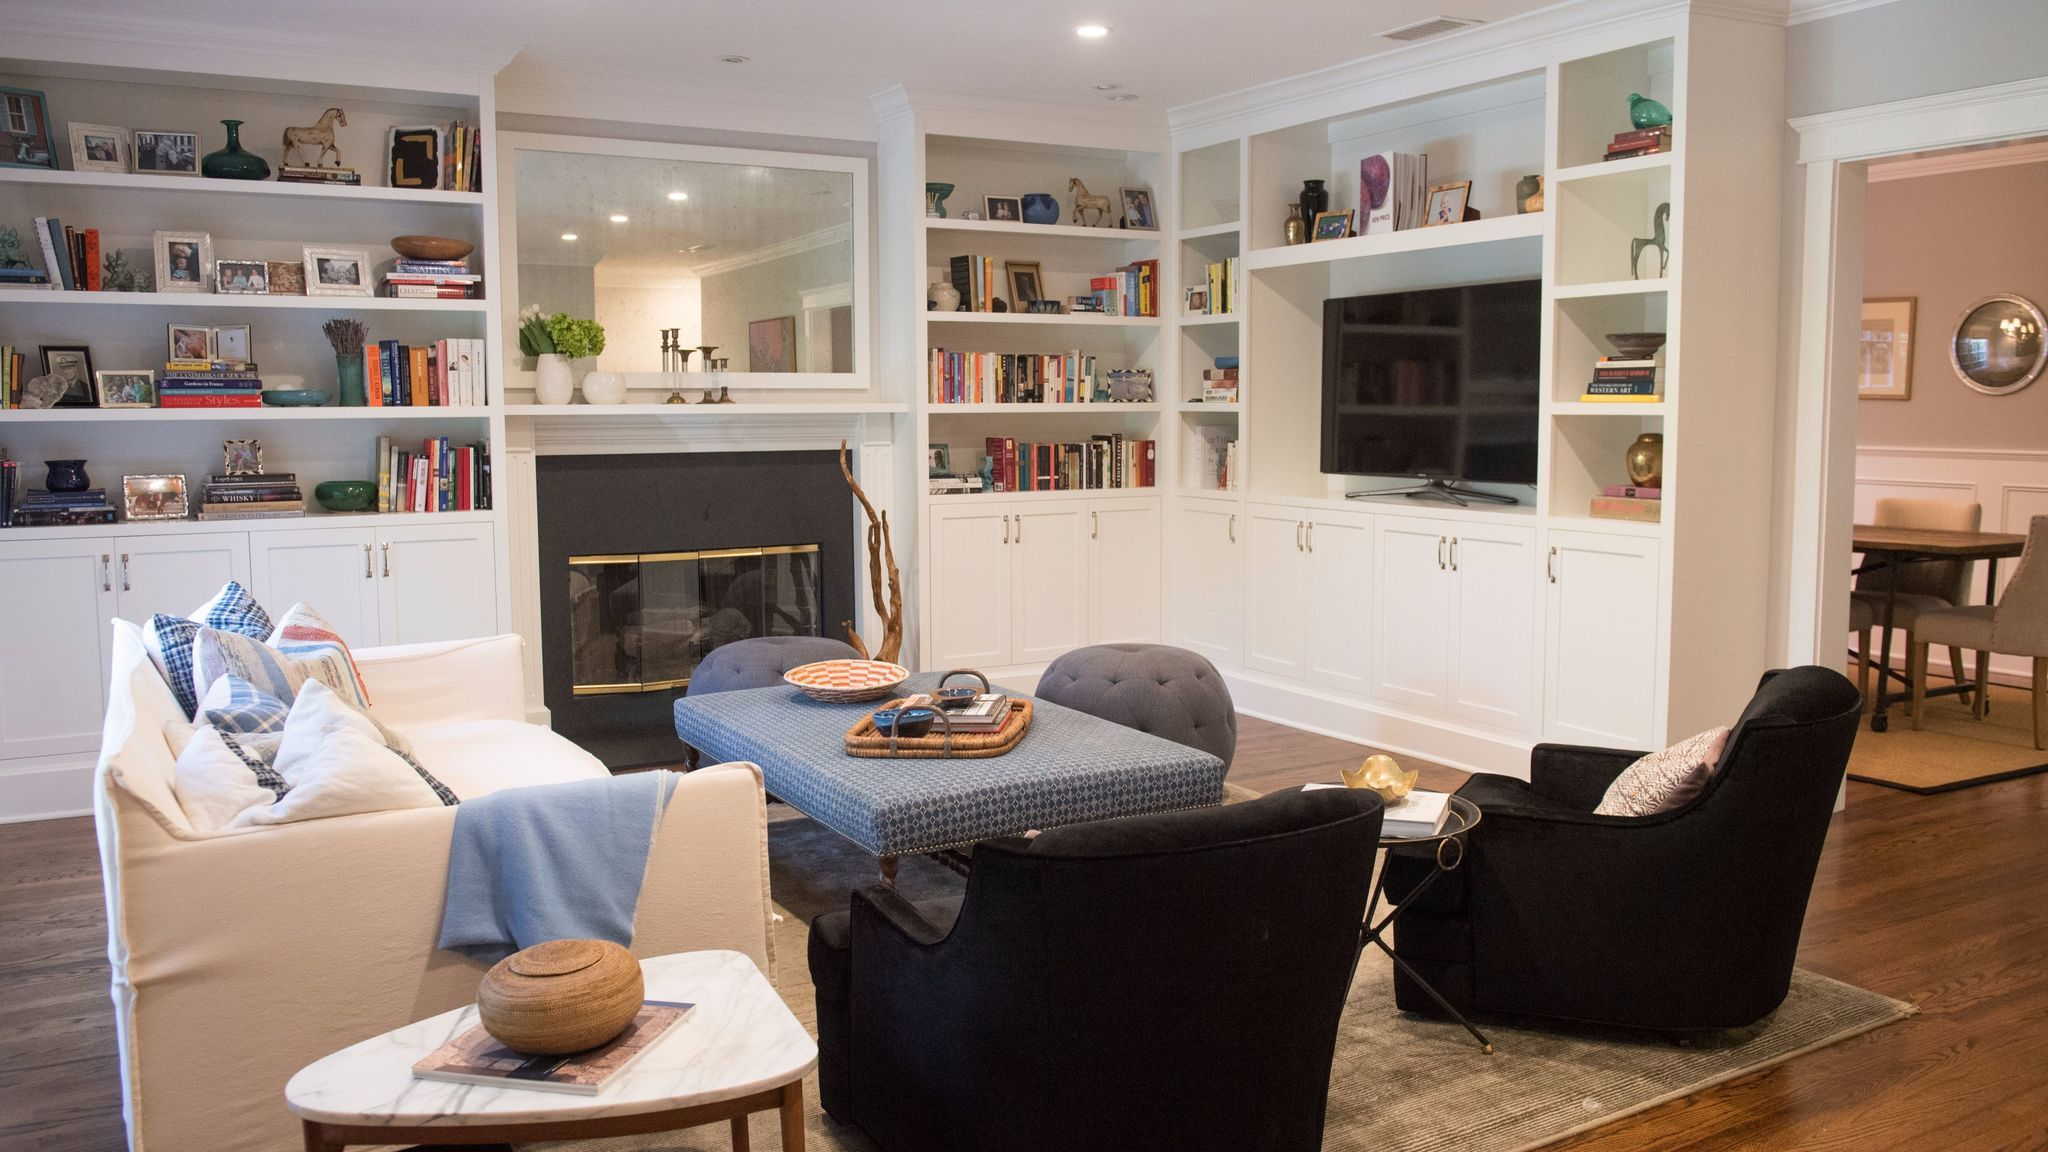 After: Built-in bookshelves and storage greatly improved the appearance of the living room.